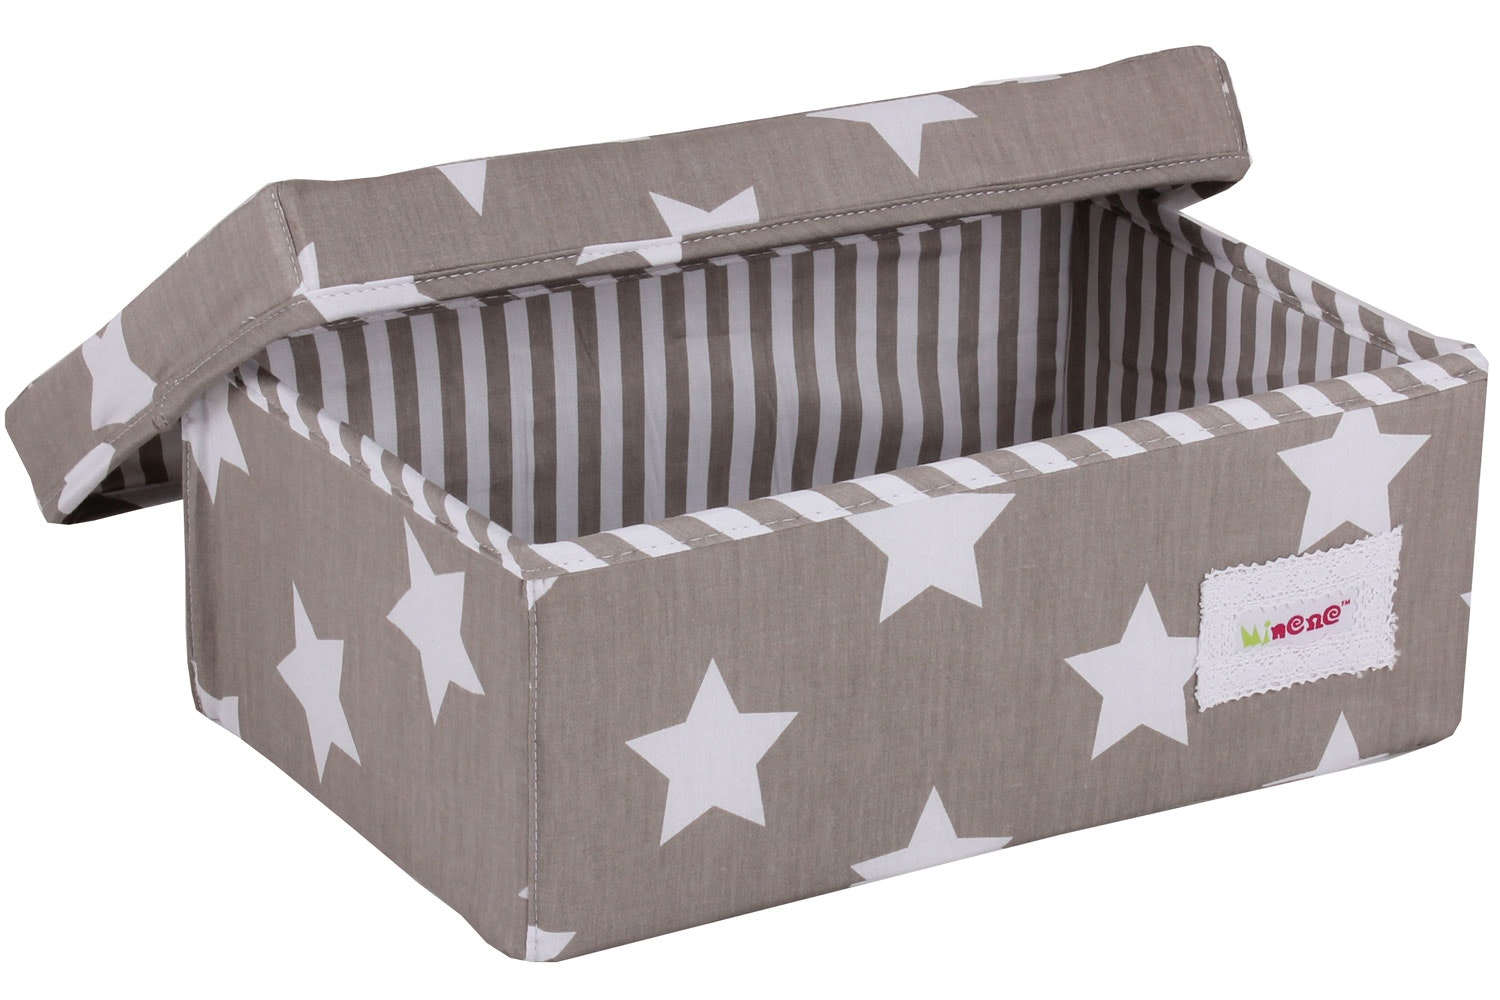 Minene Small Storage Box | Taupe Star